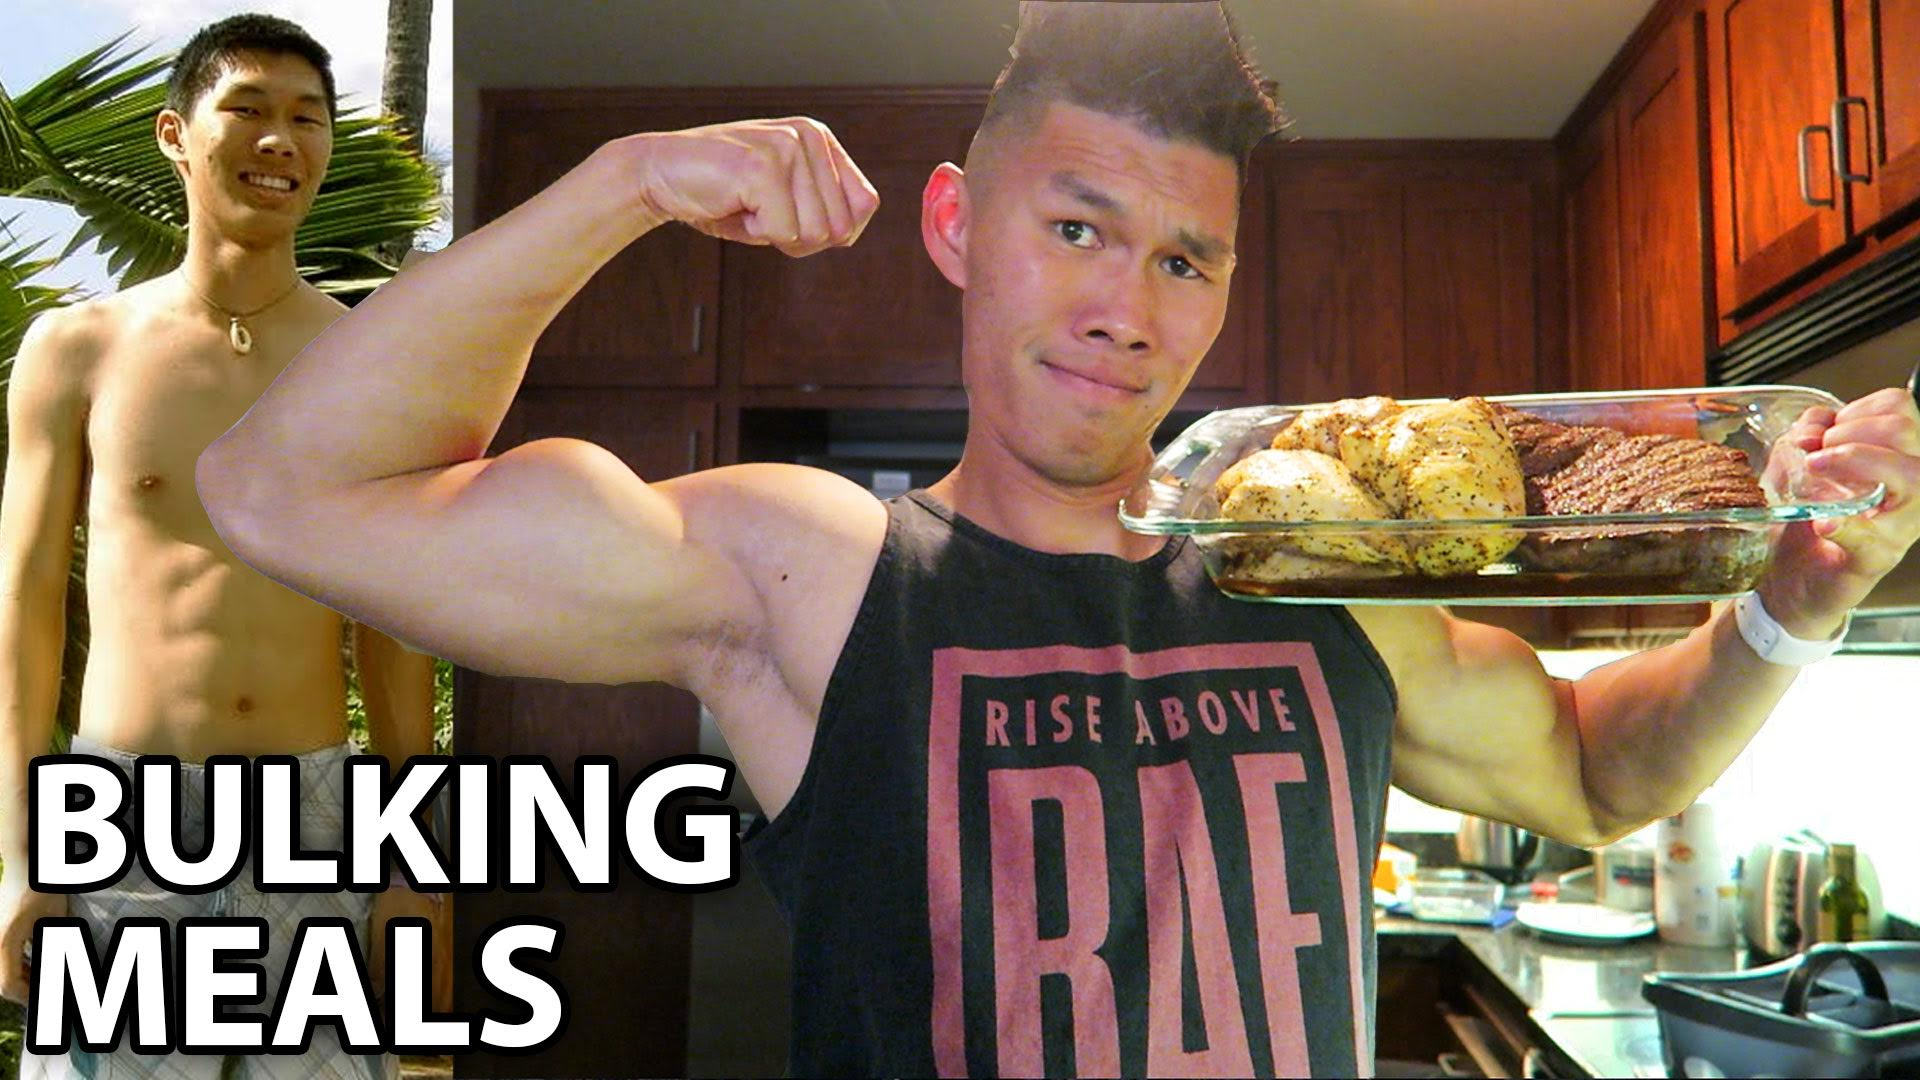 MY BULKING DIET MEALS TO GAIN MUSCLE - Life After College: Ep. 446